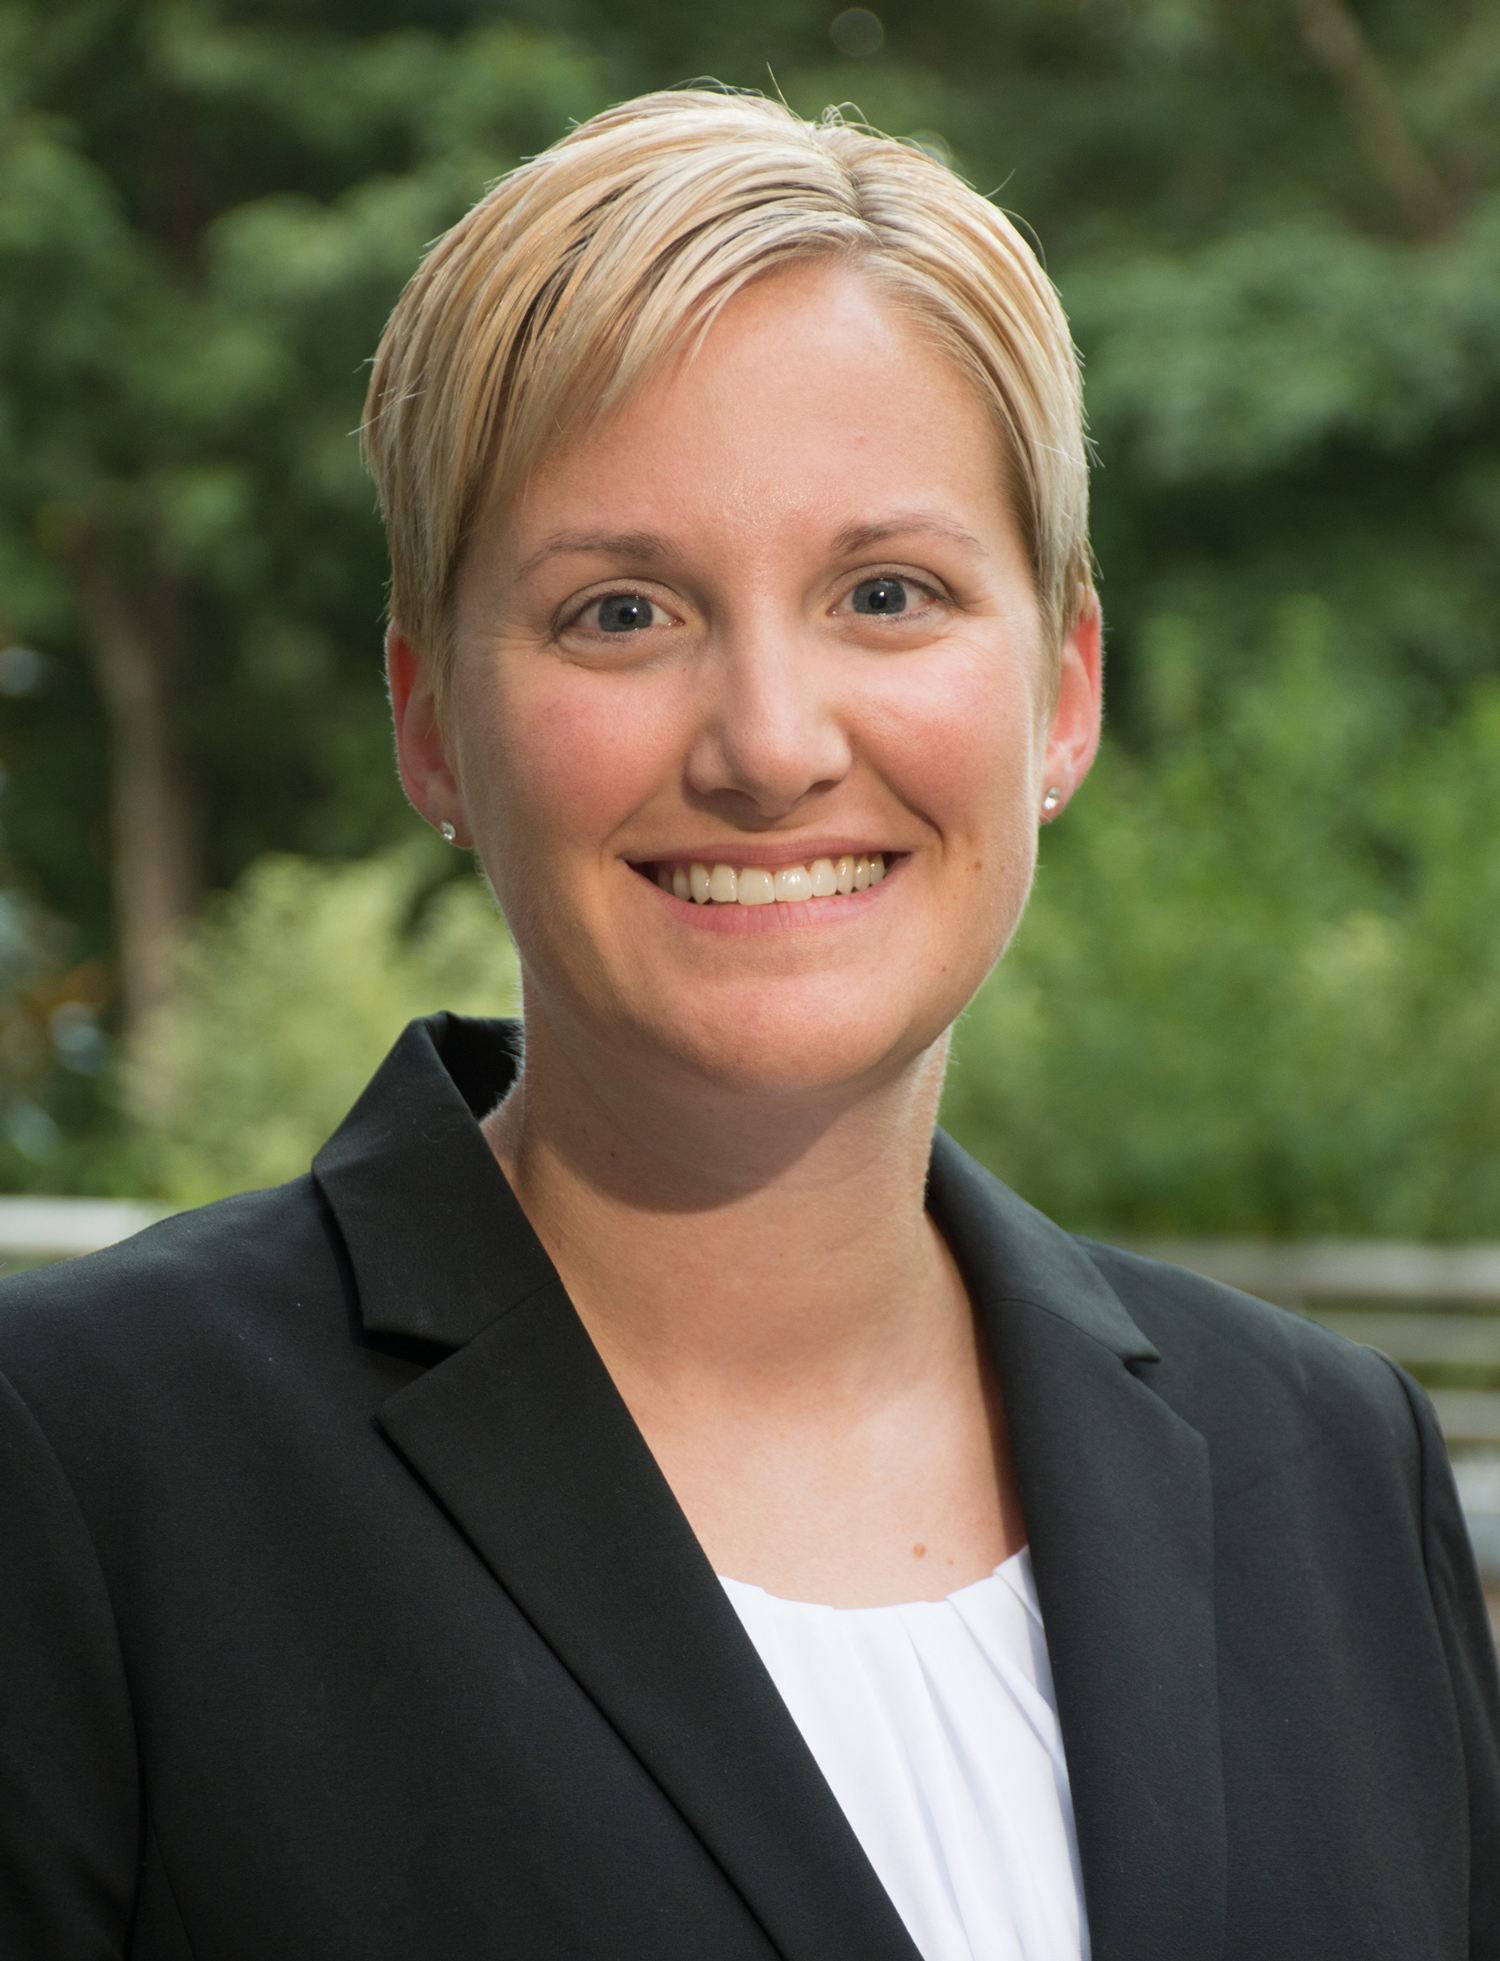 Chick-fil-A selected Michigan native Kate McNerney as the local franchise owner of one of its first restaurants in Michigan